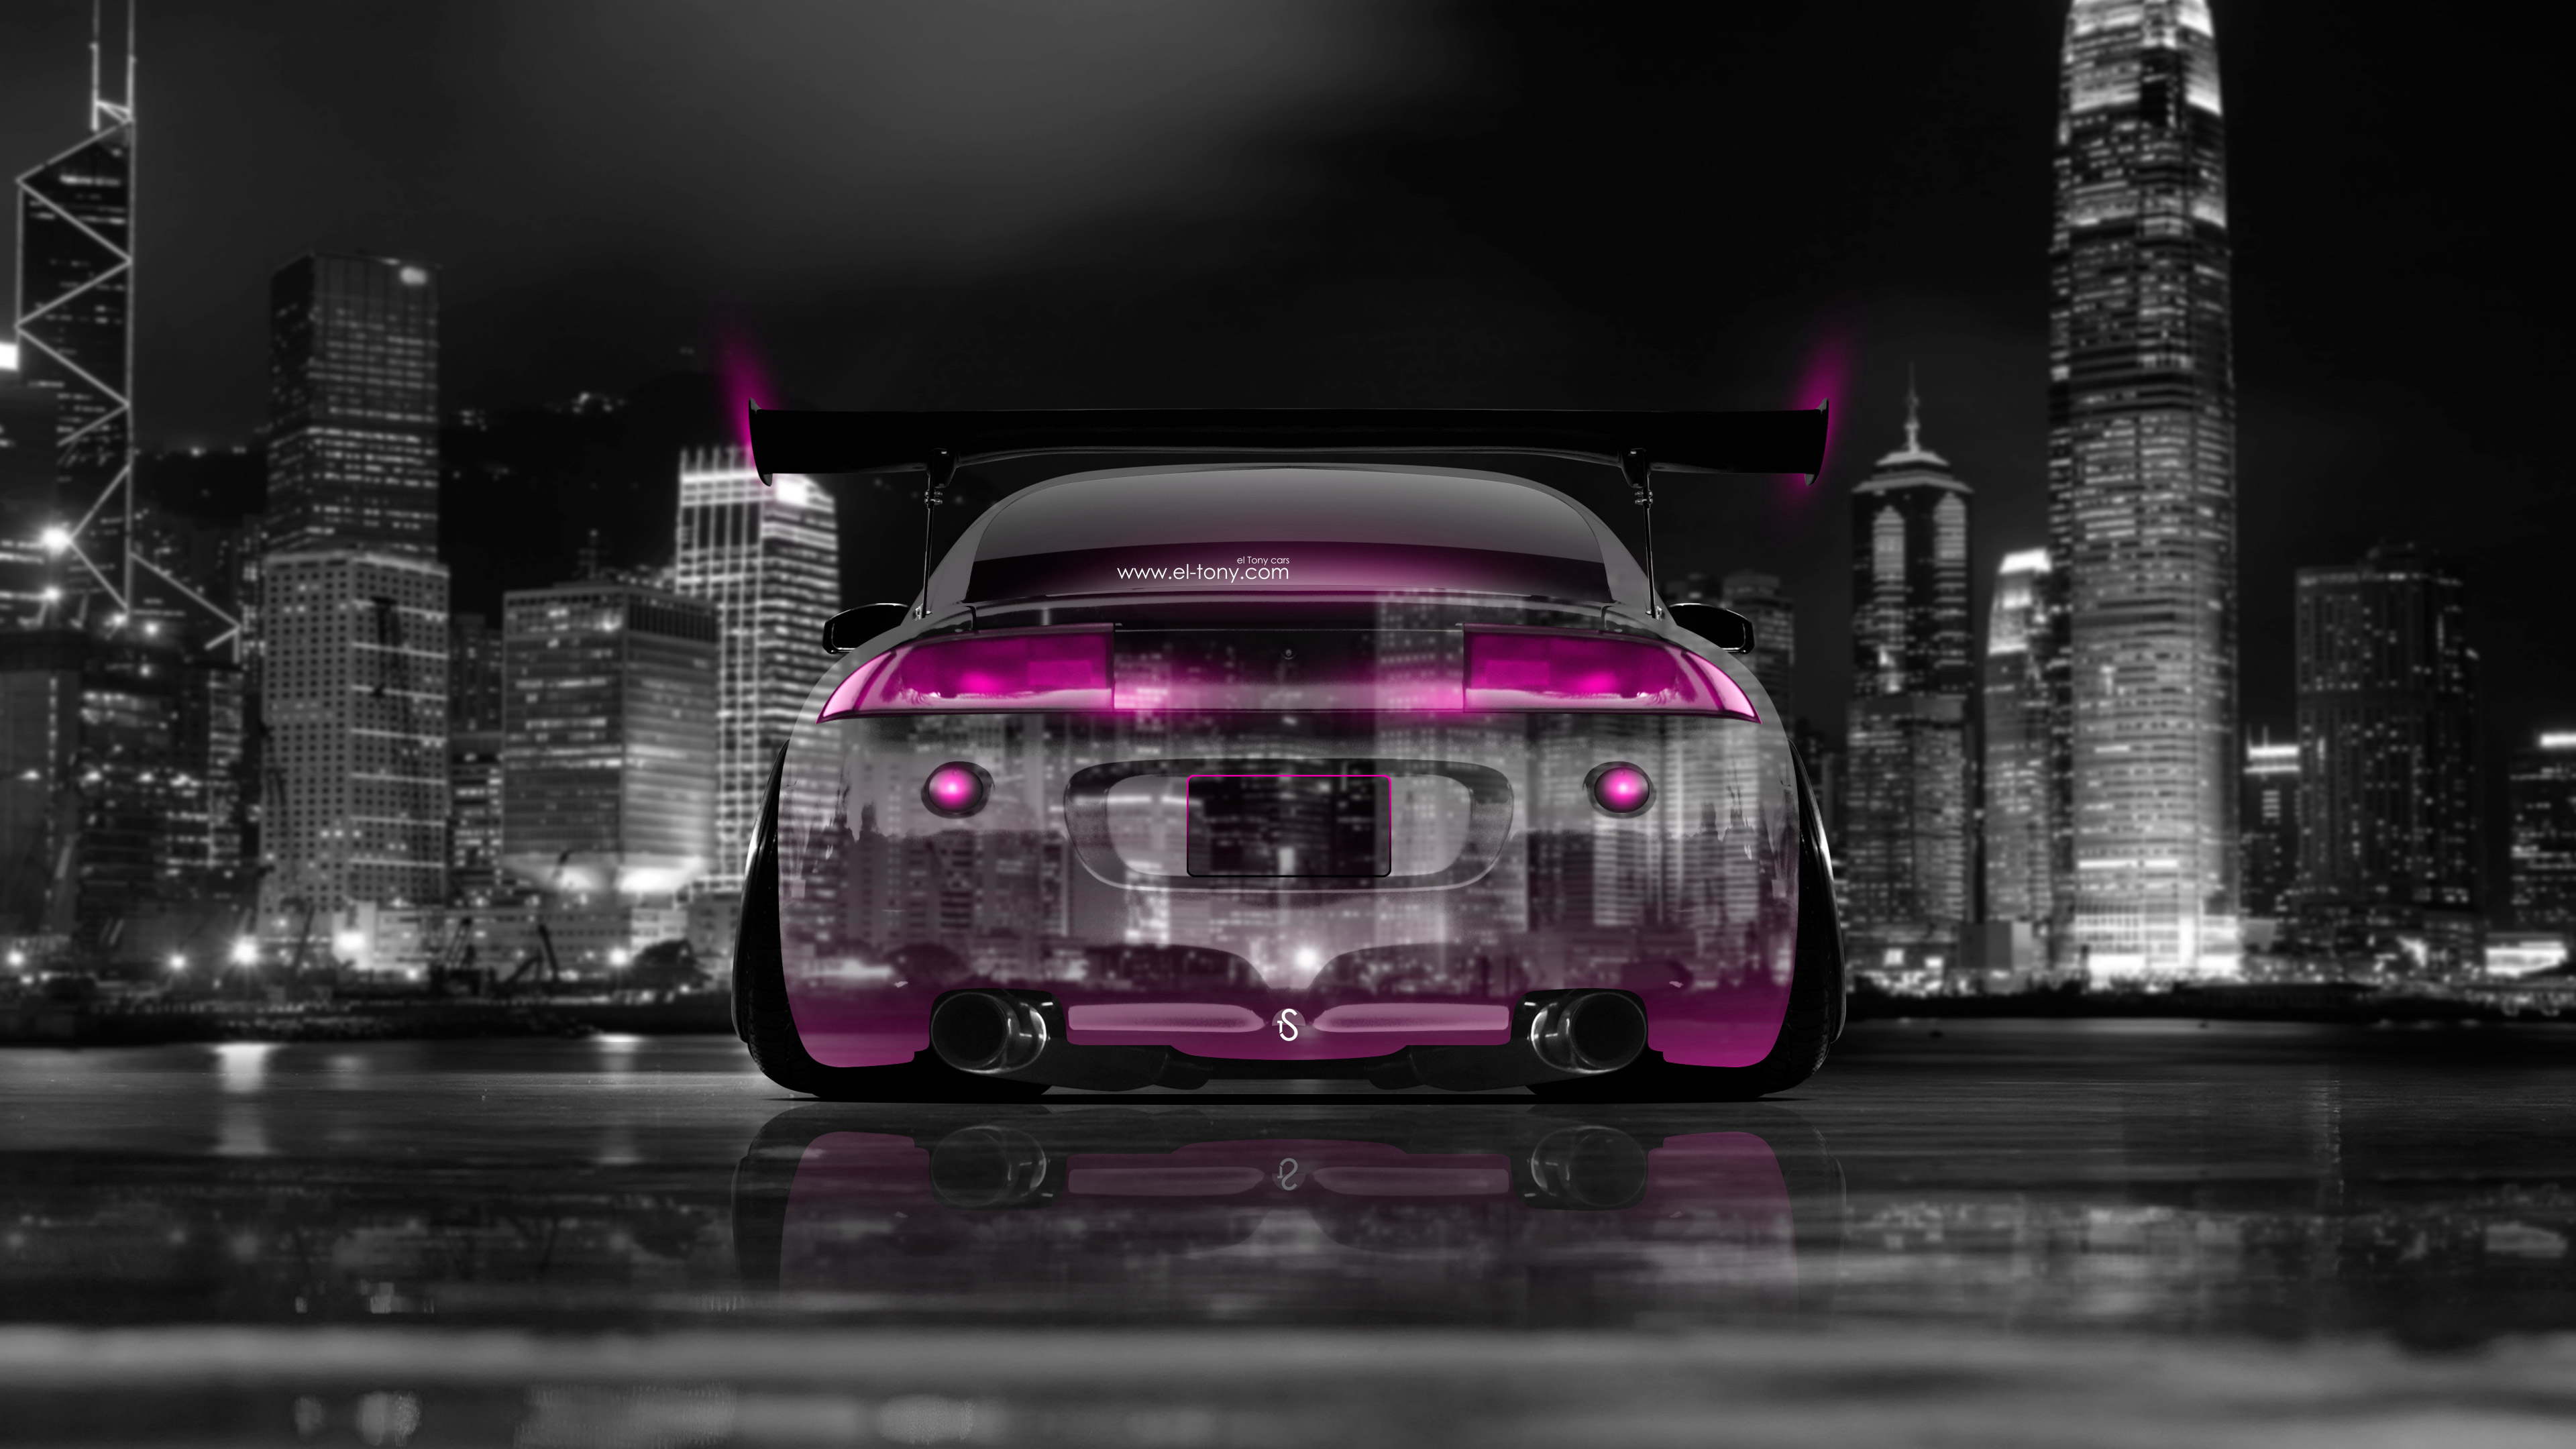 Mitsubishi Eclipse Jdm Tuning Back Crystal City Car Pink Neon K Wallpapers Design By Tony Kokhan Www El Tony Com